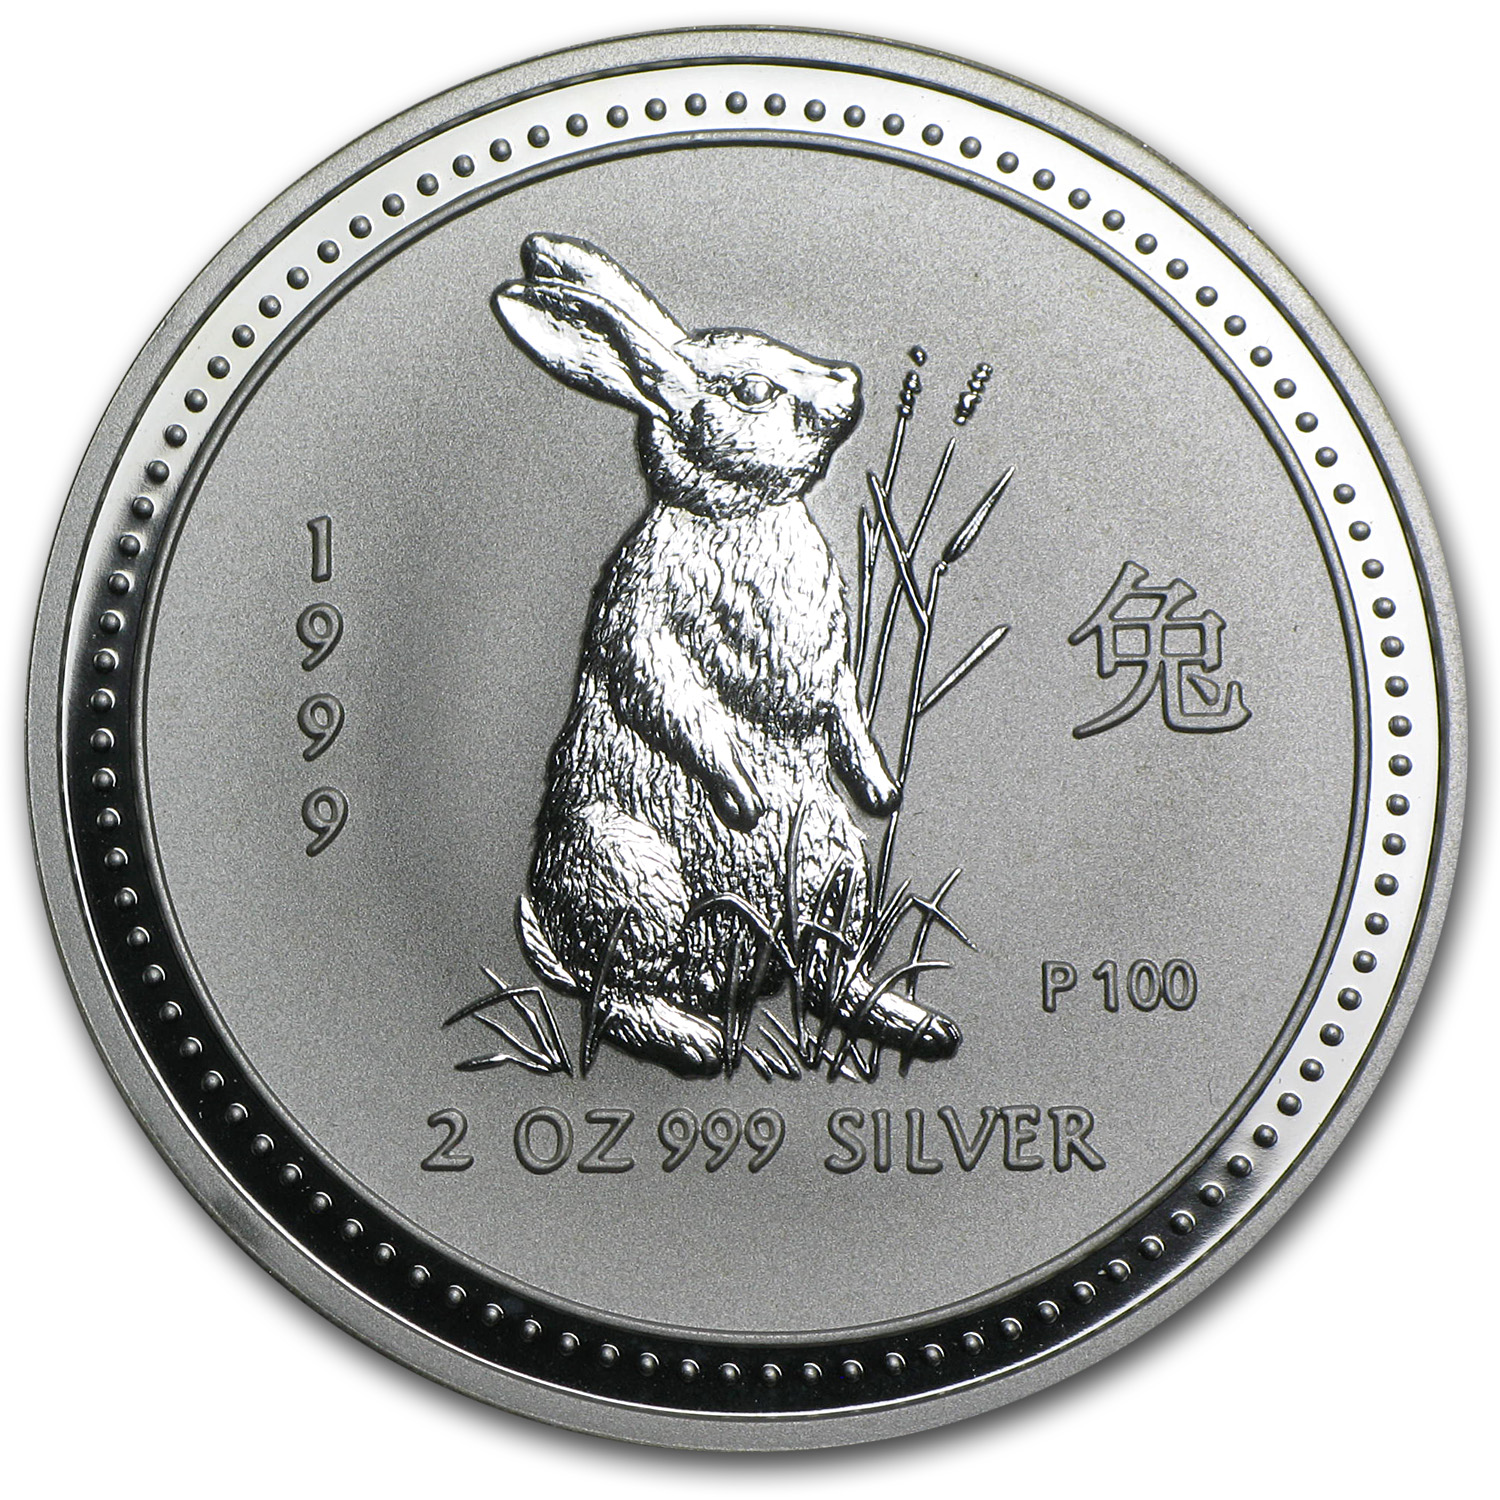 1999 2 oz Silver Australian Year of the Rabbit BU